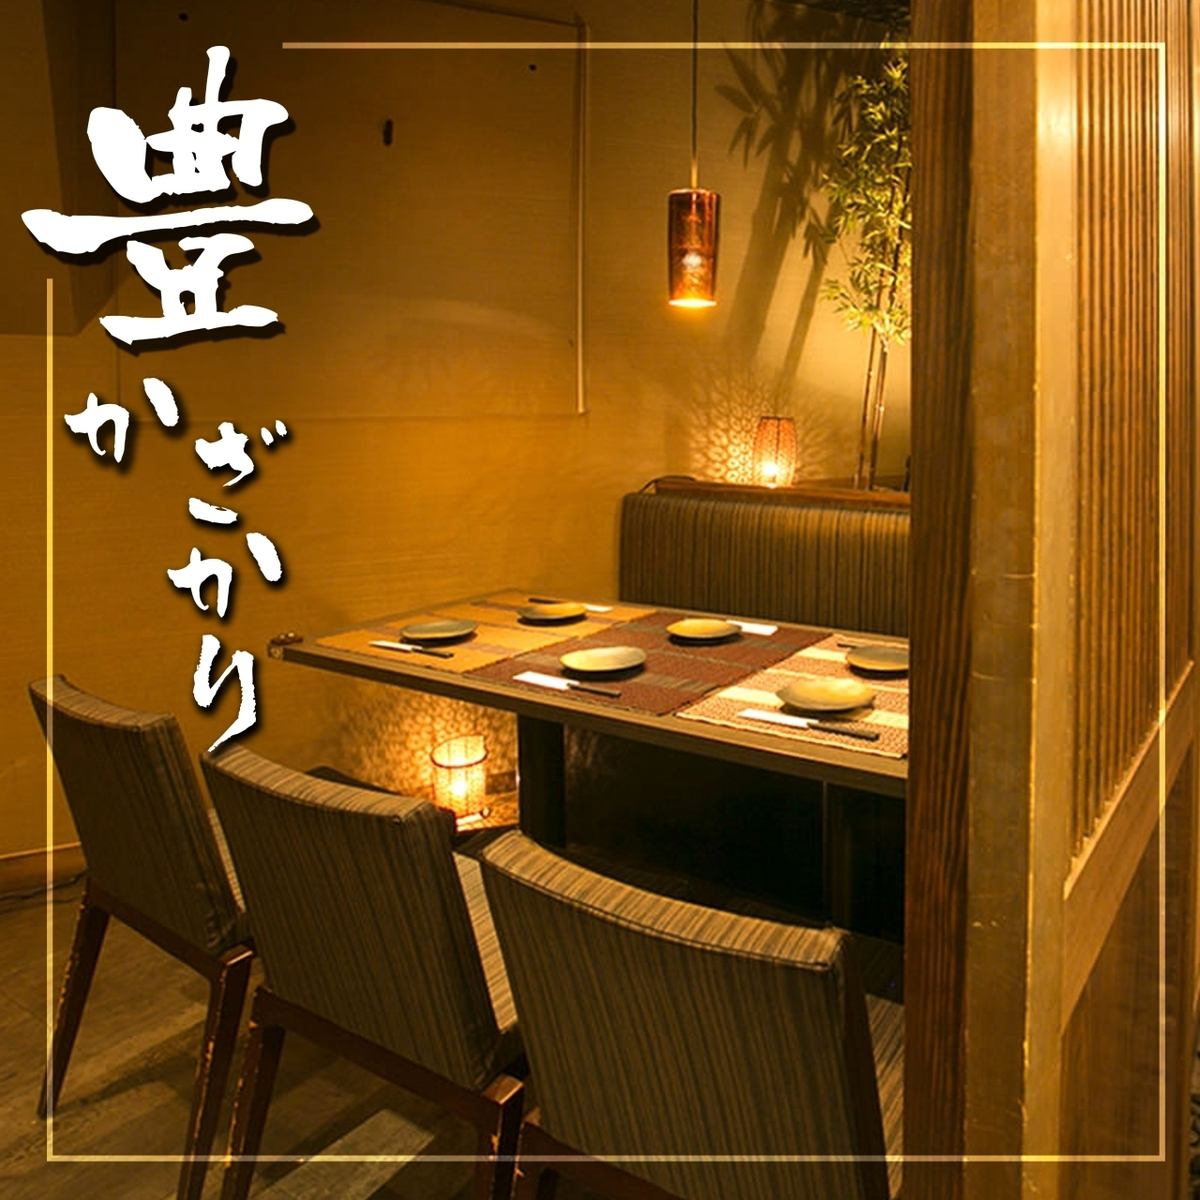 [Hideaway private space] will prepare a private room in accordance with the needs ★